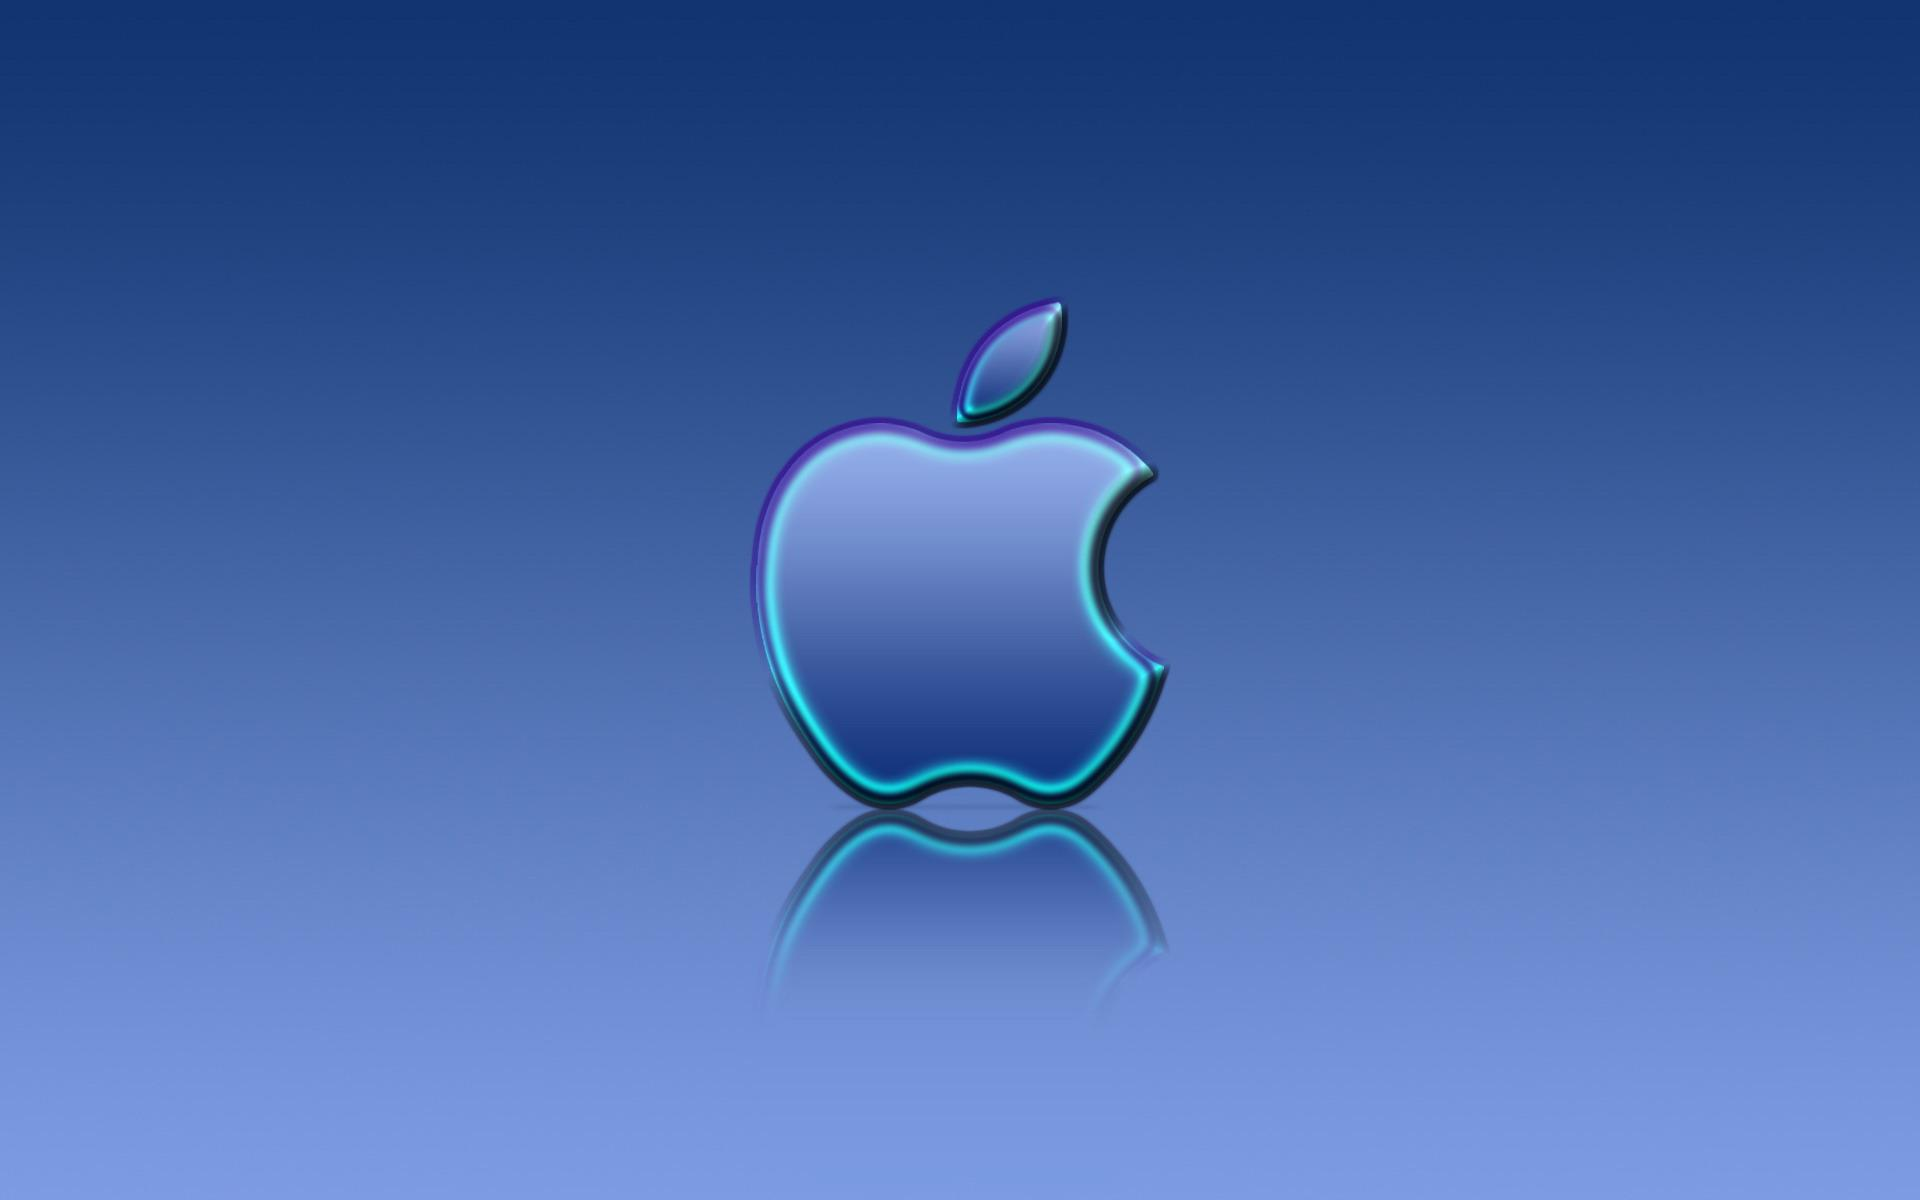 Wallpaper download apple - Blue Apple Wallpapers First Hd Wallpapers Download